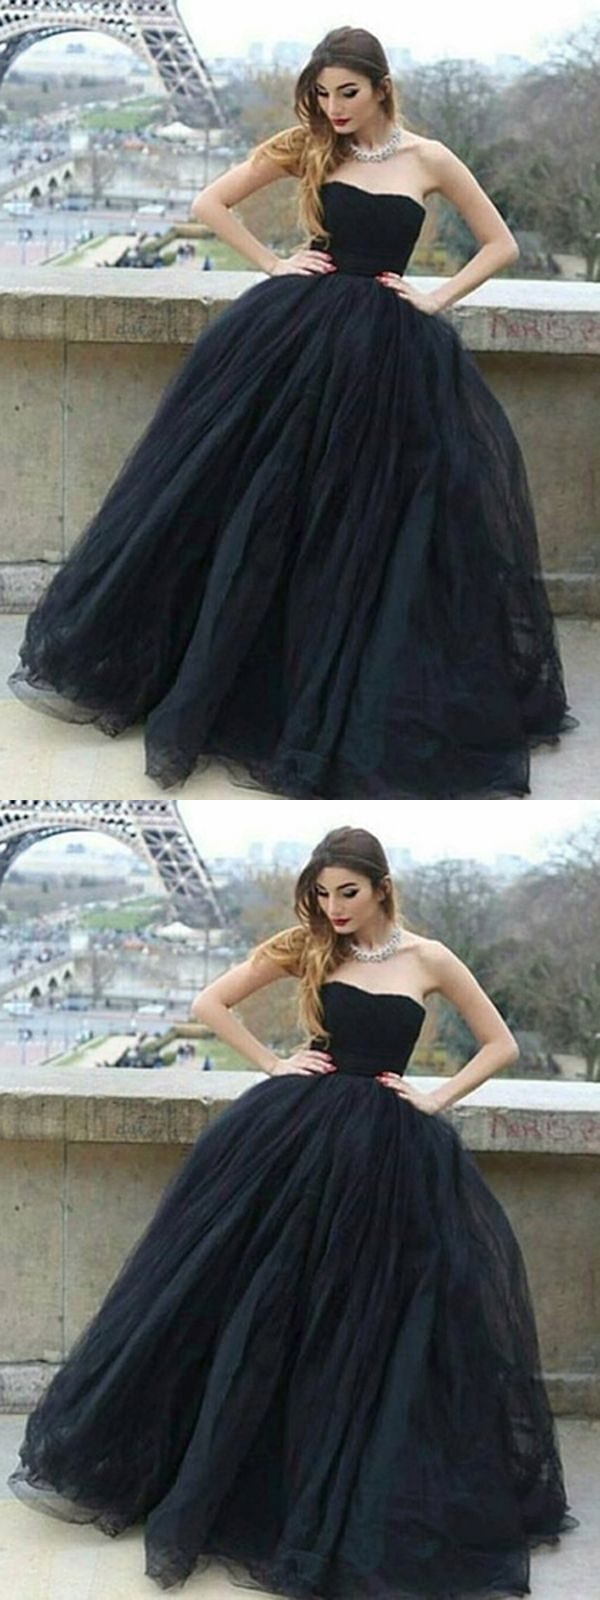 black long prom dress ball gown simple modest strapless cheap